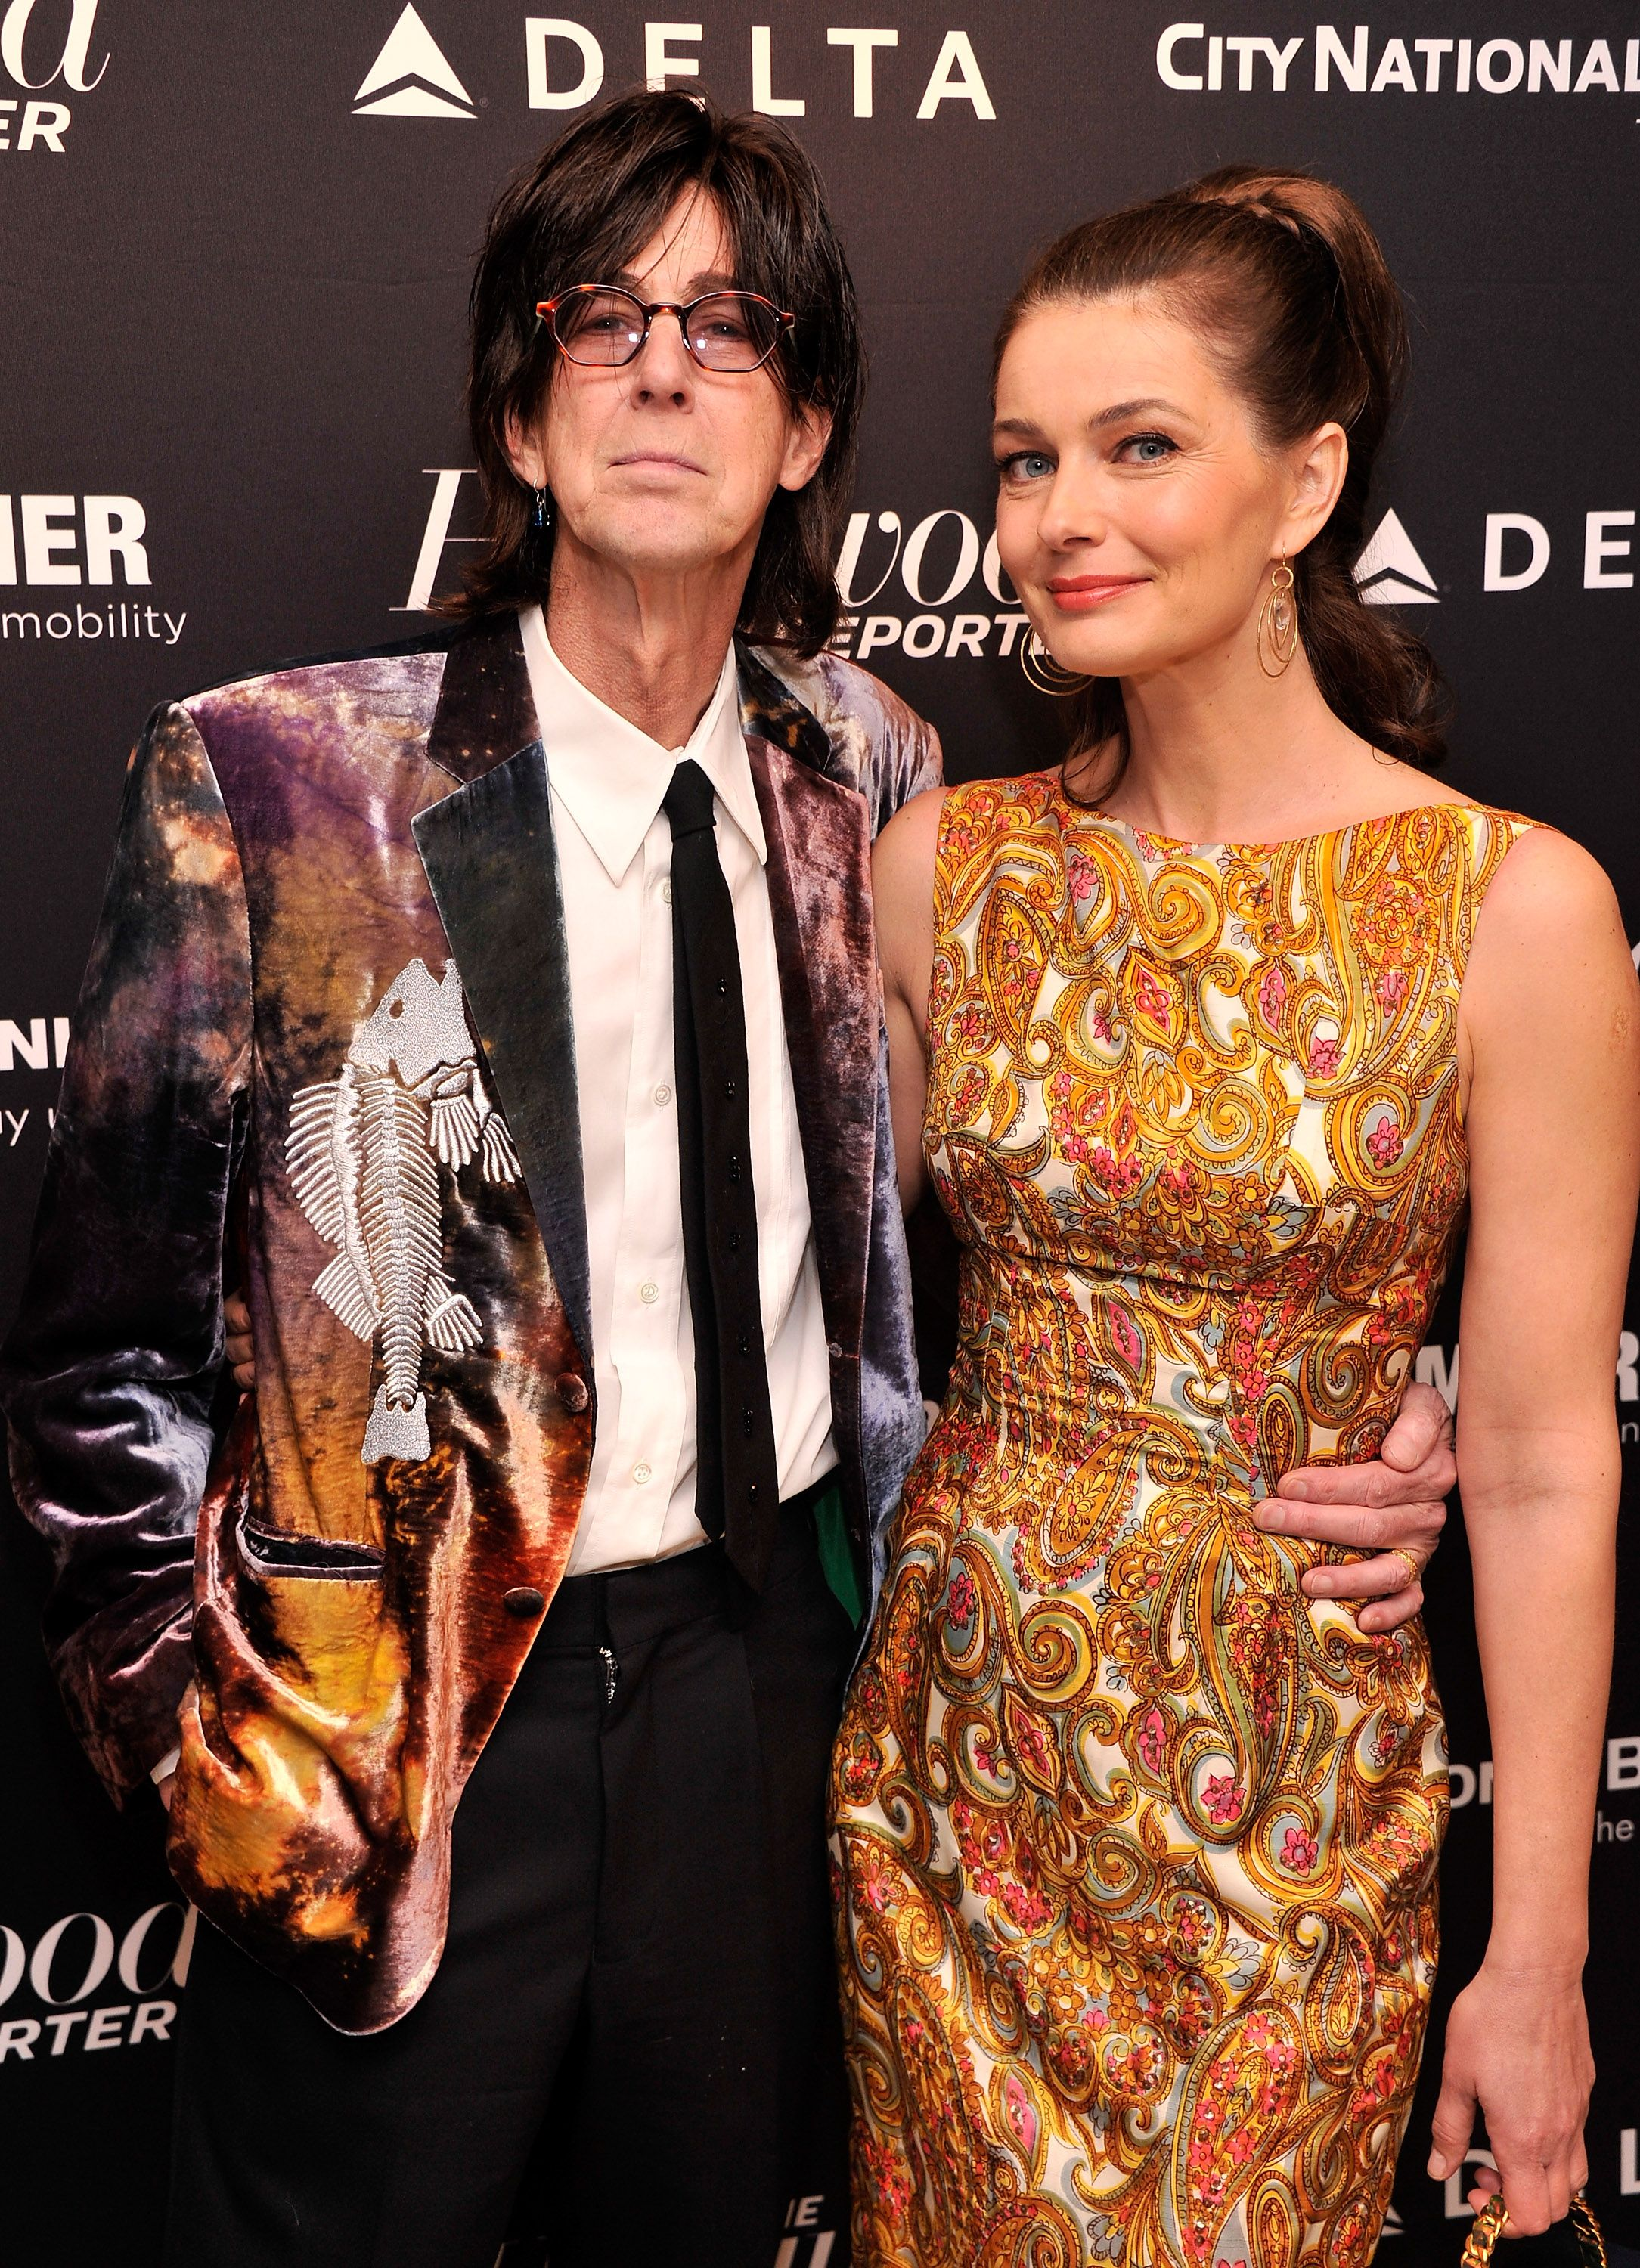 Singer/musician Ric Ocasek and model Paulina Poriskova at the Hollywood Reporters 35 Most Powerful People In Media at Four Seasons Grill Room on April 10, 2013 | Photo: Getty Images